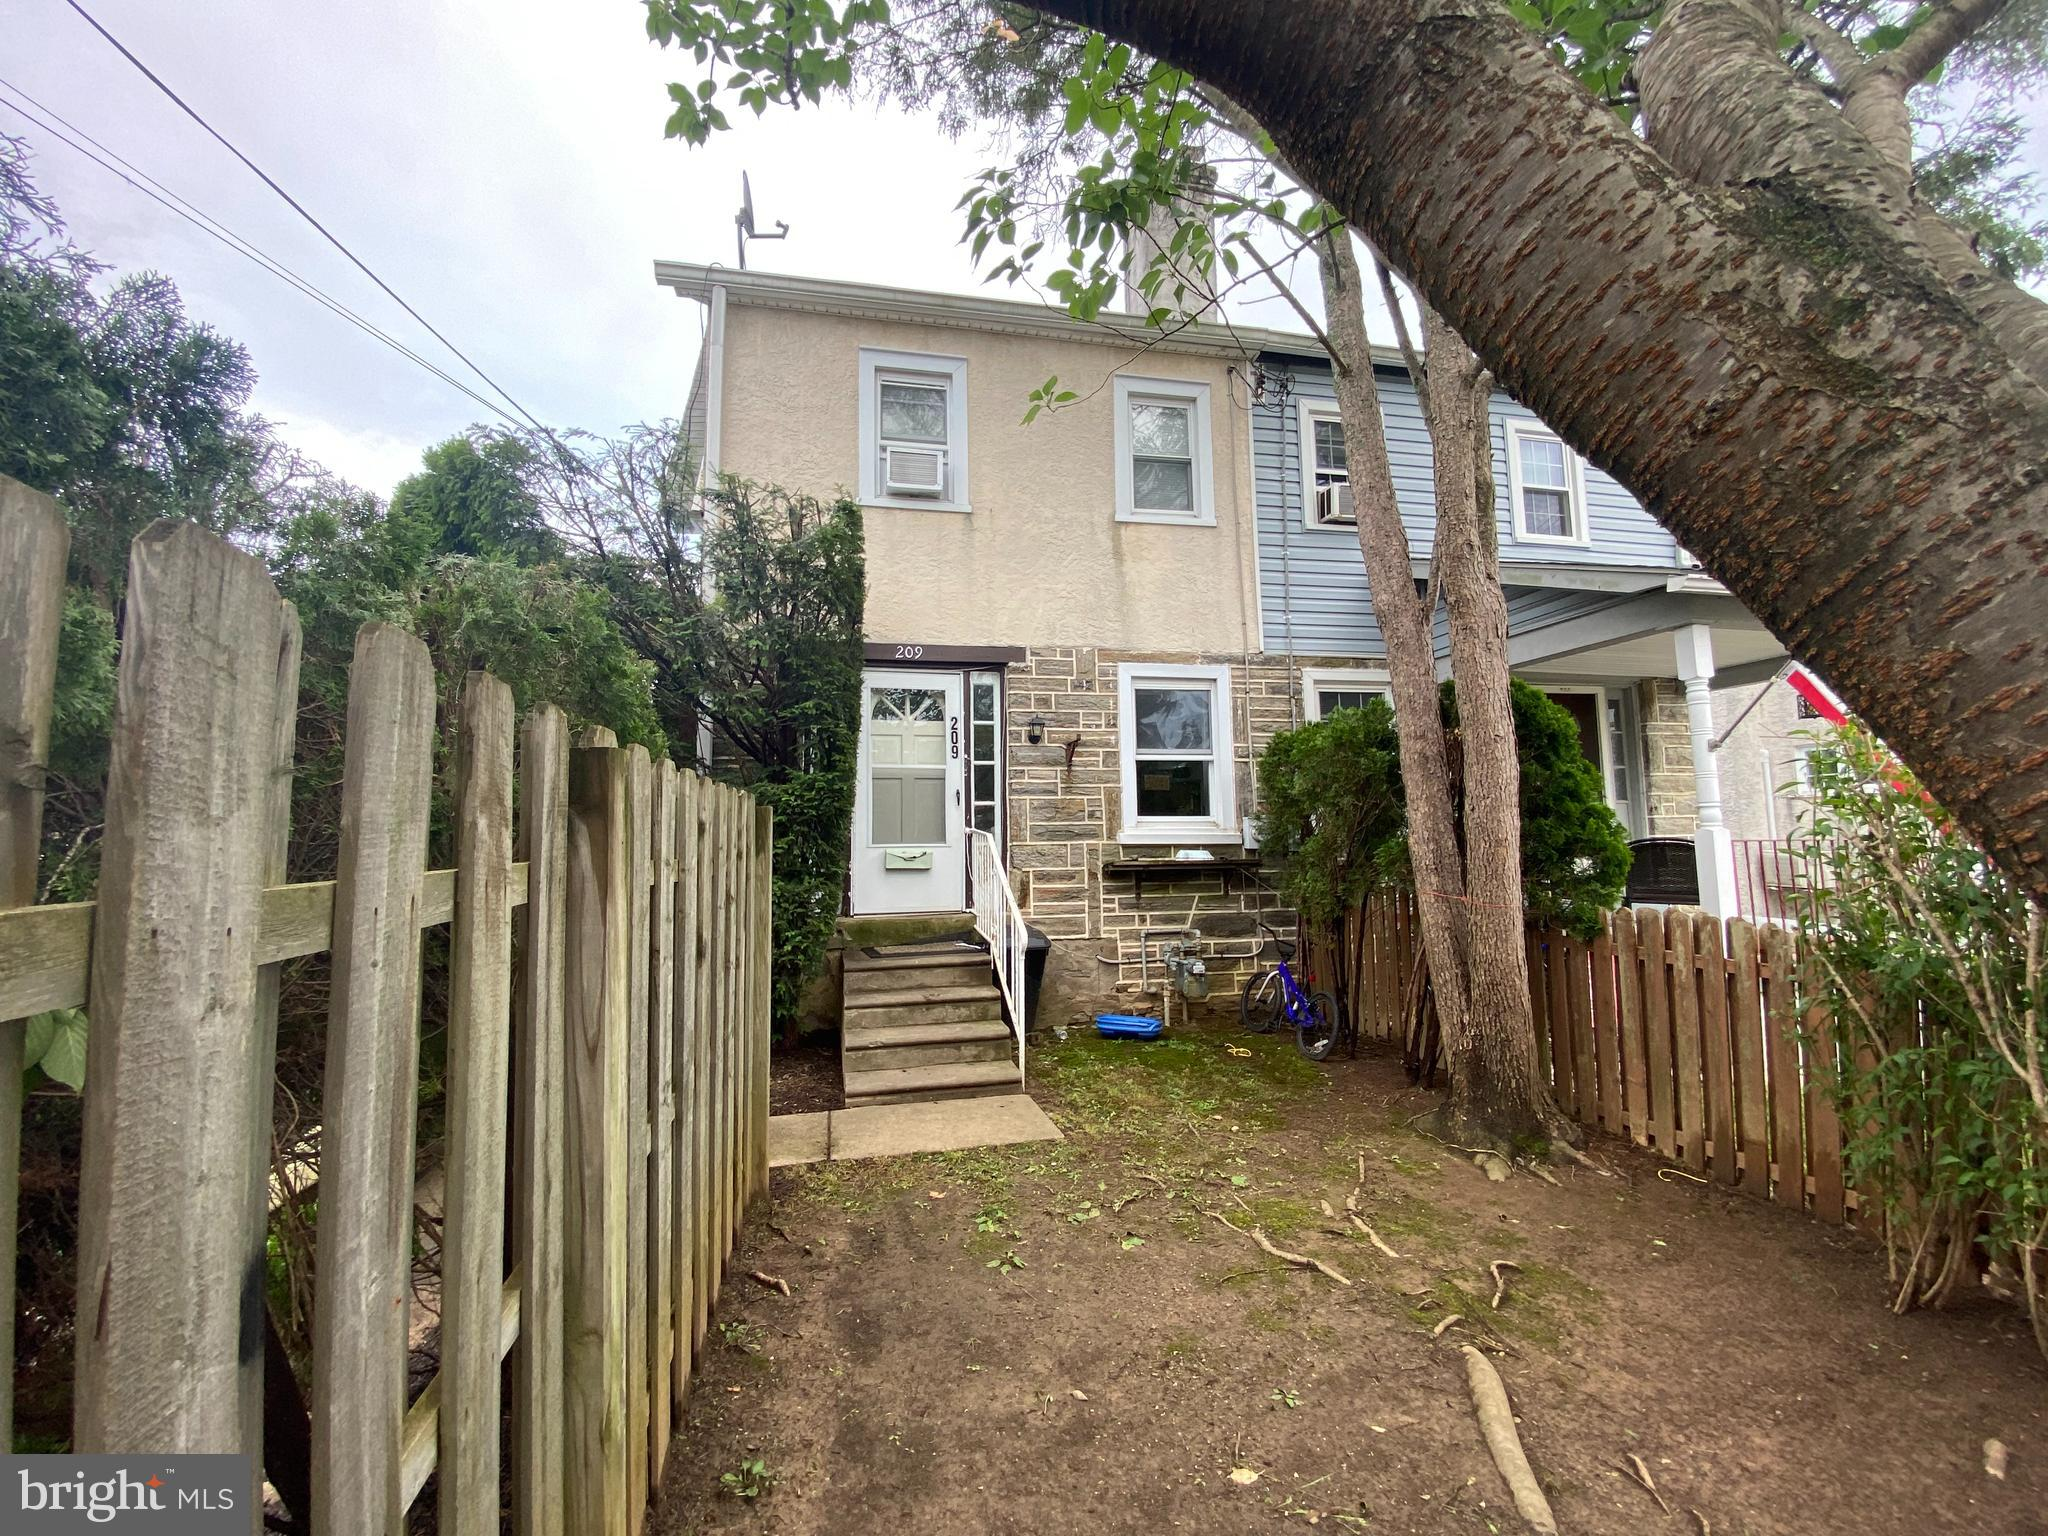 Fabulous opportunity to own an affordable twin in award winning Radnor Township.  First Floor boasts Living Room, Dining Room, Kitchen and Powder Room.  2nd Floor has 3 good sized Bedrooms and 1 full Bathroom.  Close to transportation, restaurants and much more!